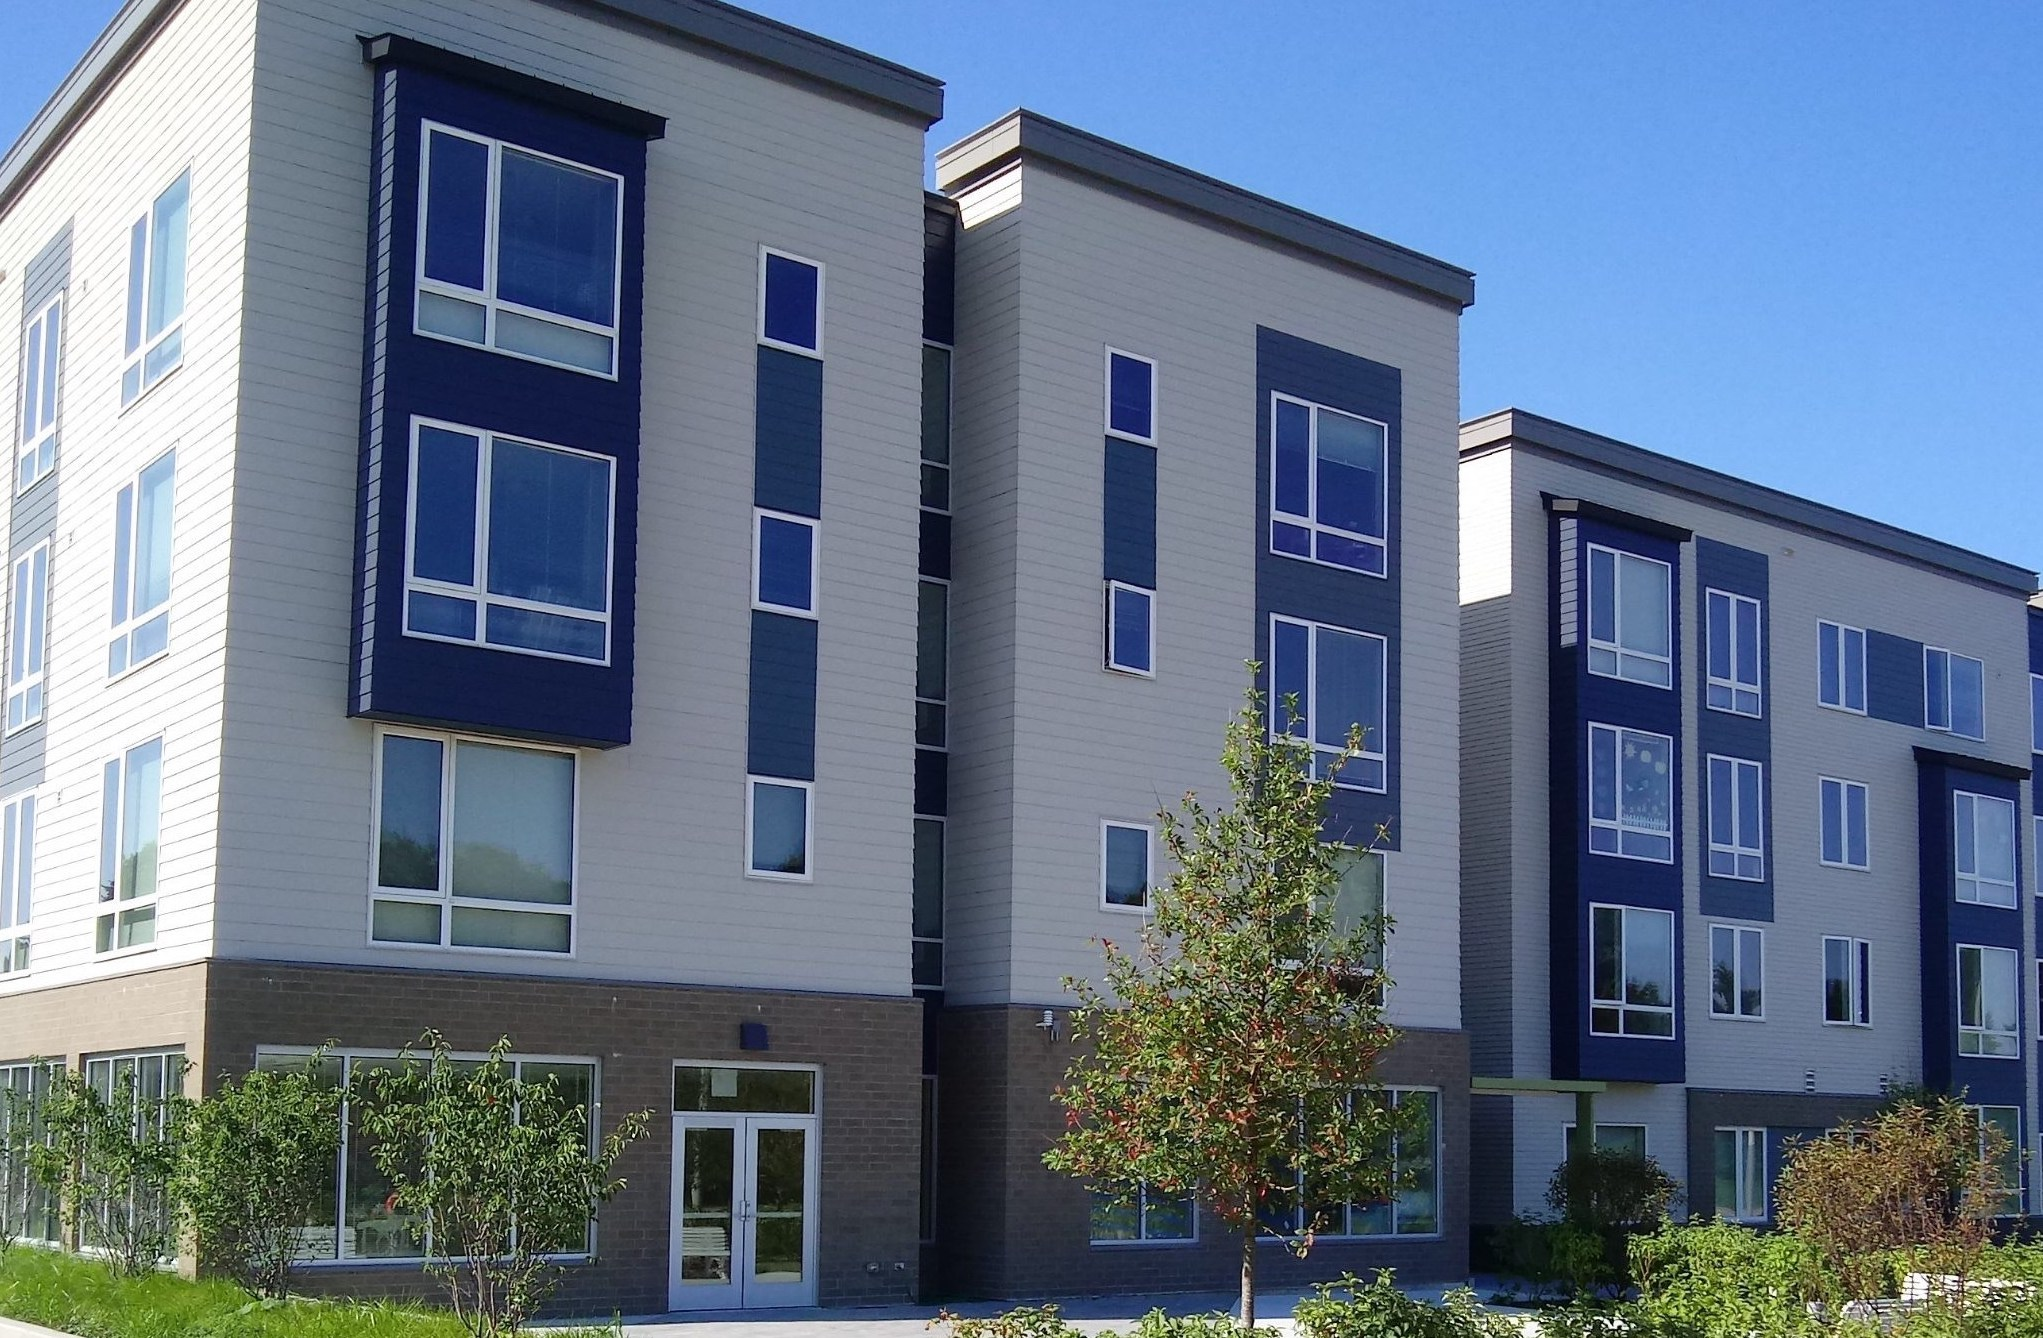 Gardner Capital Completes New 61-Unit Affordable Senior Living Community in Suburban Chicago Market of West Dundee